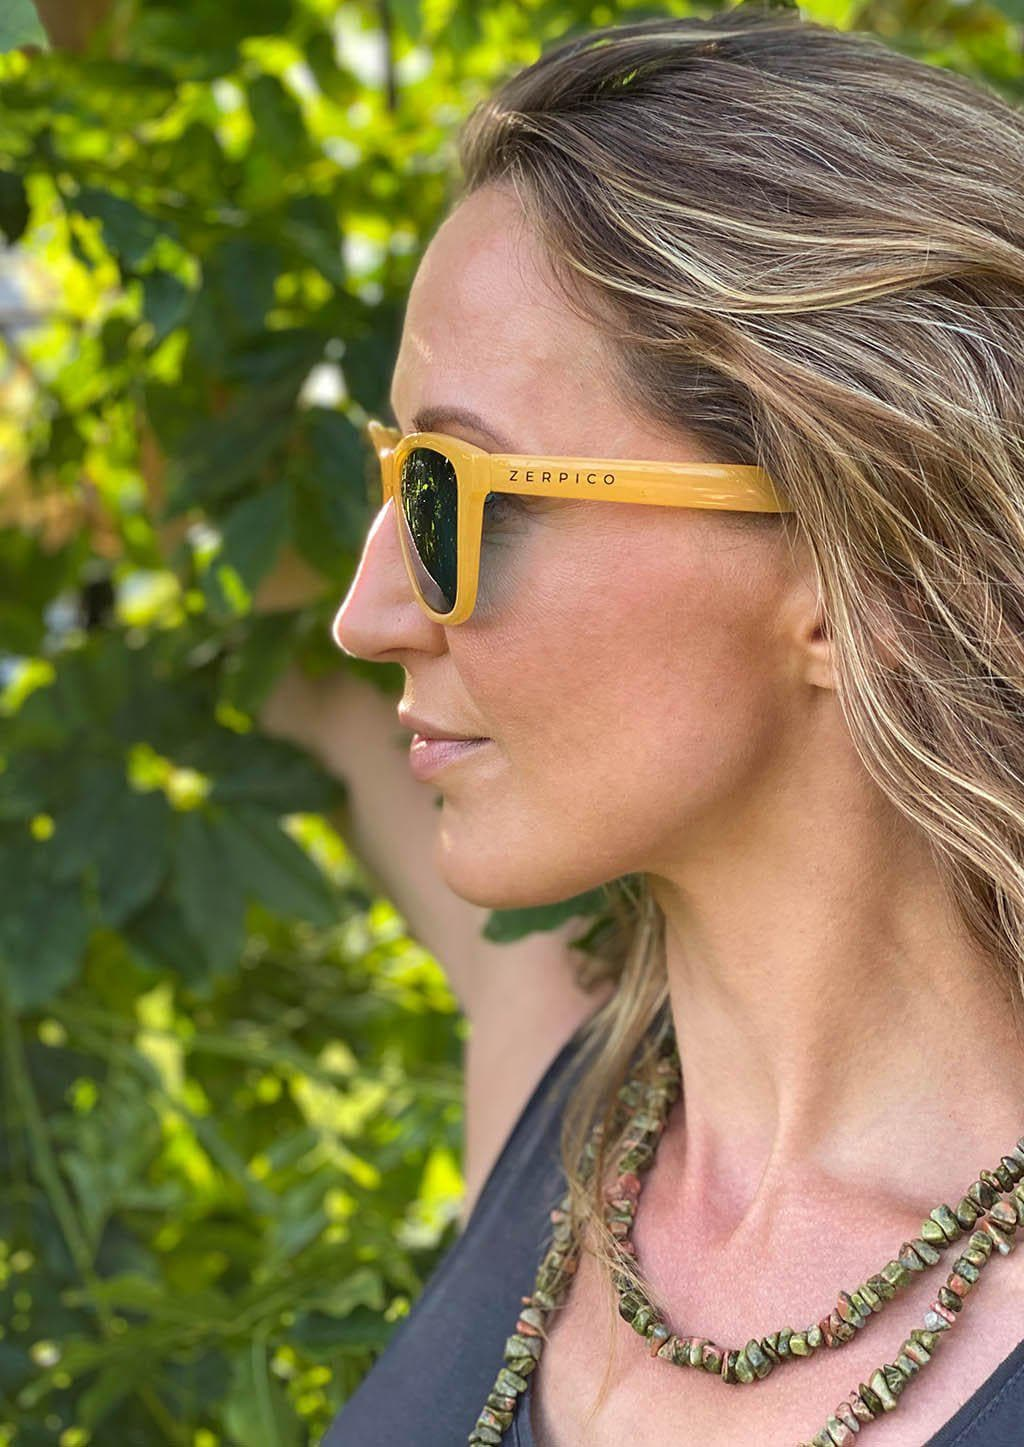 Our Mood V2 is an improved version of our last wayfarers. Plastic body for great quality and durabilty. This is Lemon with yellow frame and green lenses. From the side outside on Swedish model.